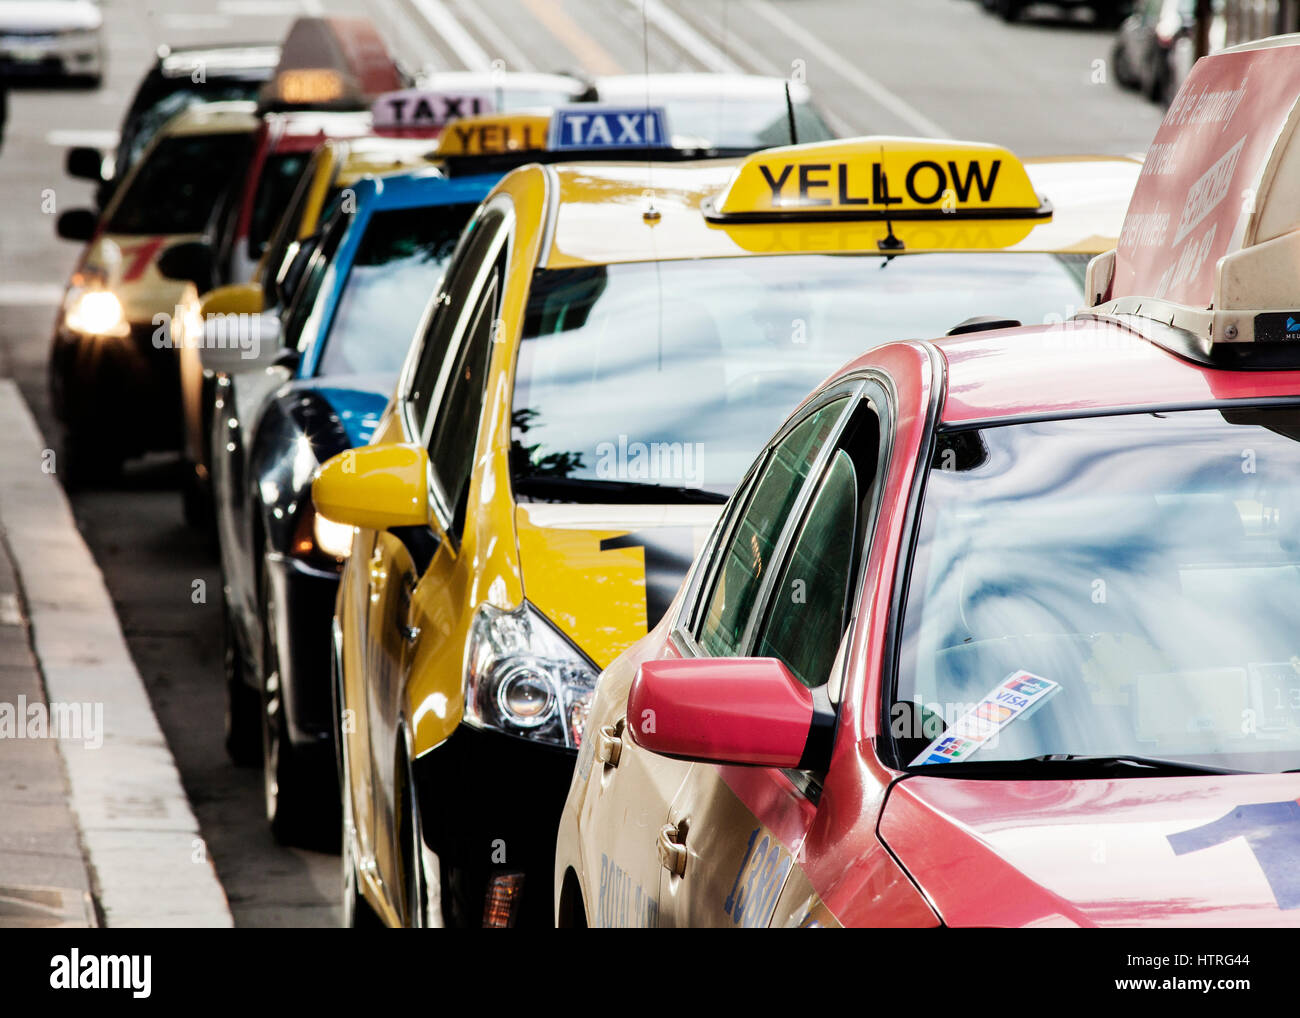 A row of colorful taxis. Stock Photo